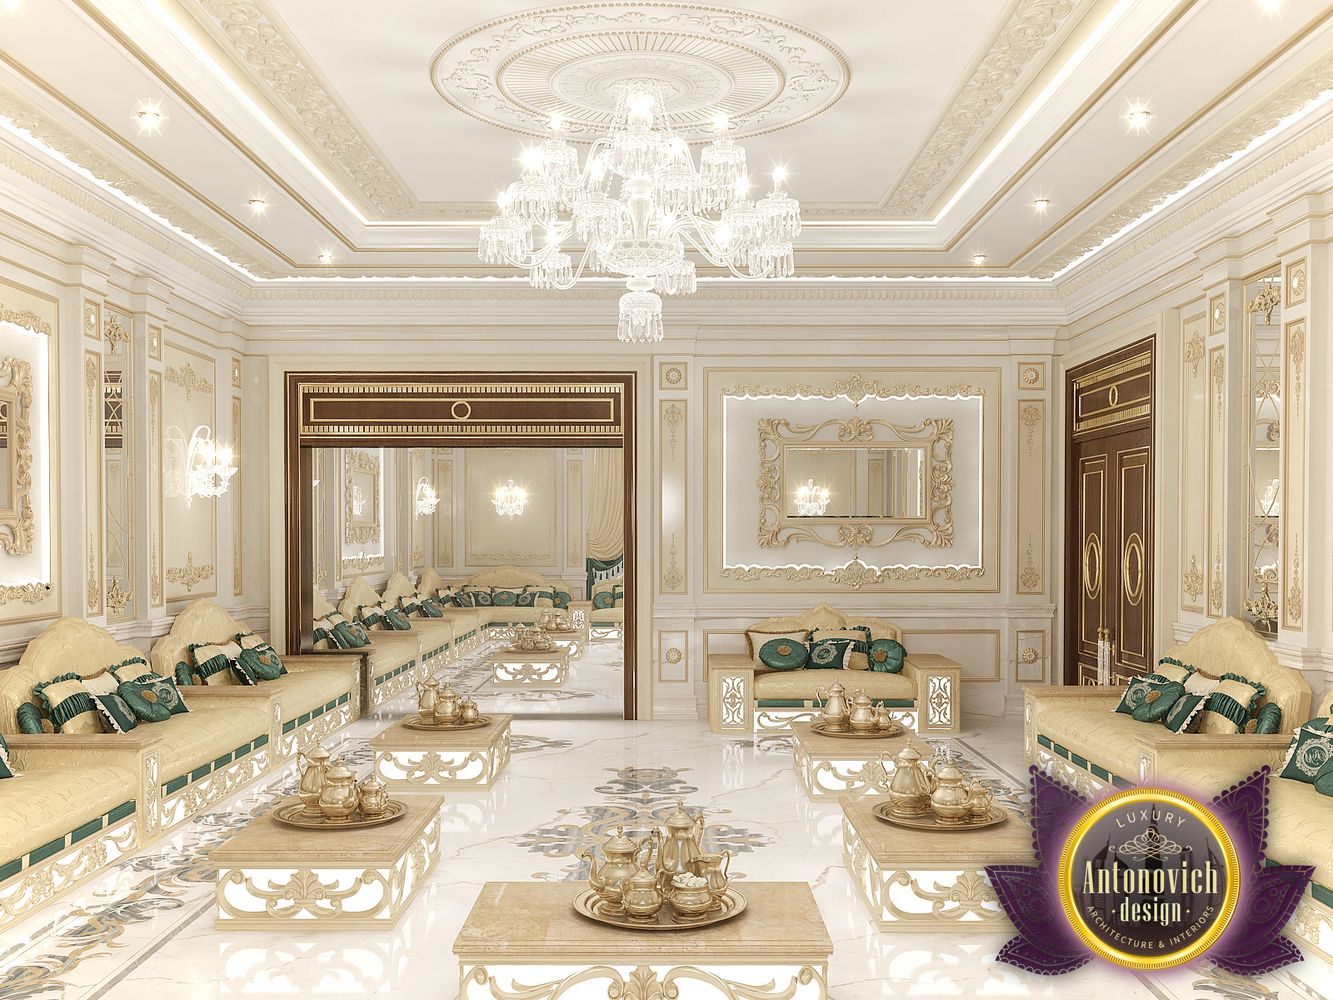 Nigeiradesign arabic majlis interior design from luxury for Luxury interior design